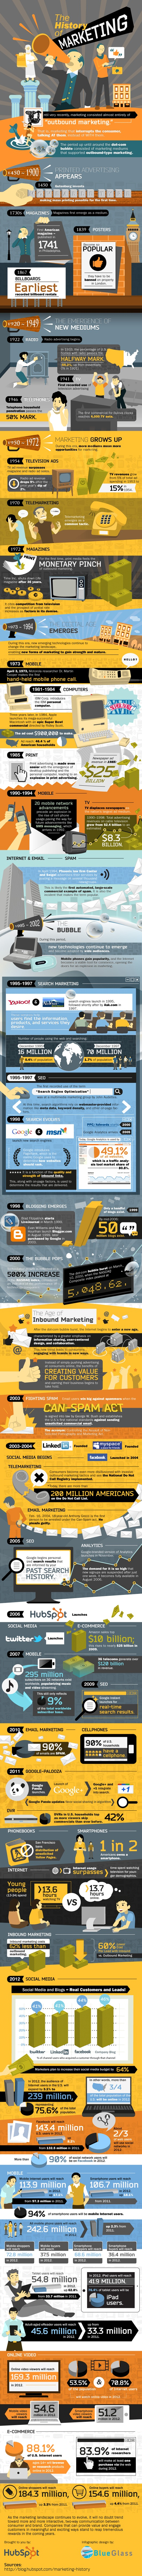 the-history-of-marketing-HUBSPOT-resized-600